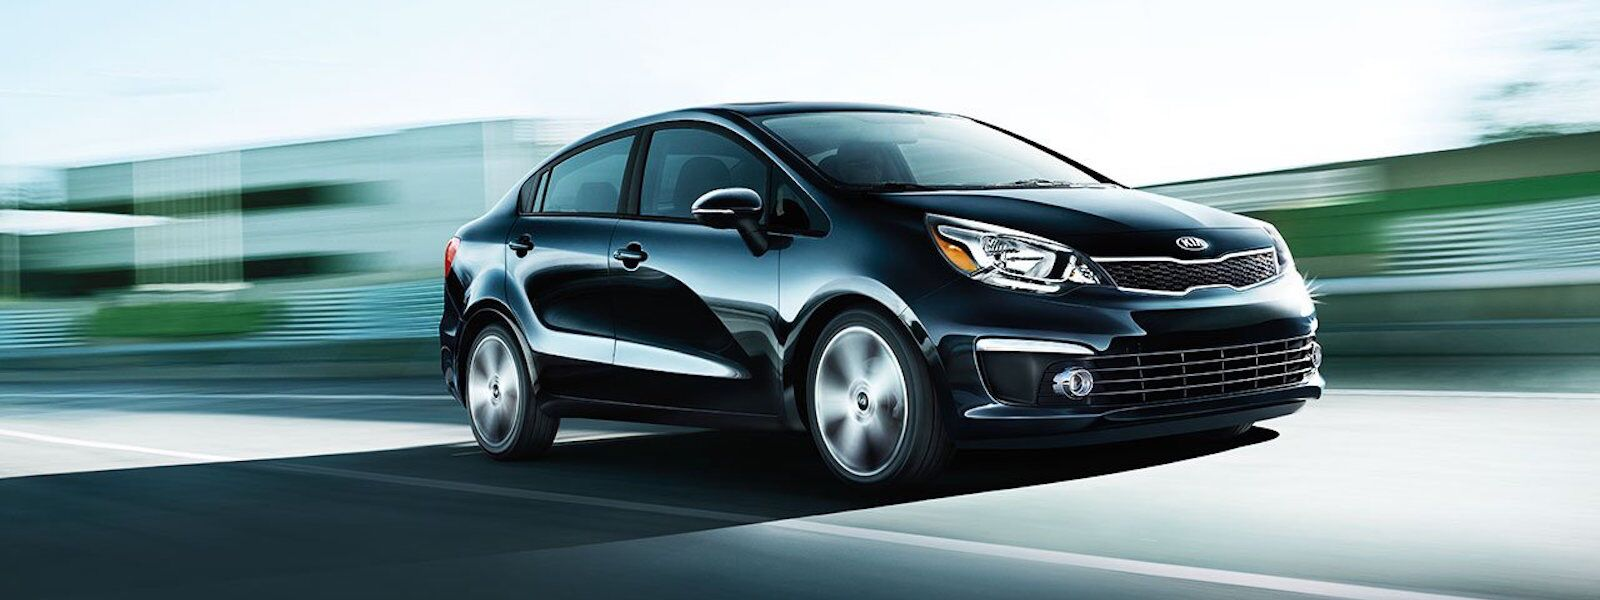 2016 Kia Rio Fuel-Efficiency